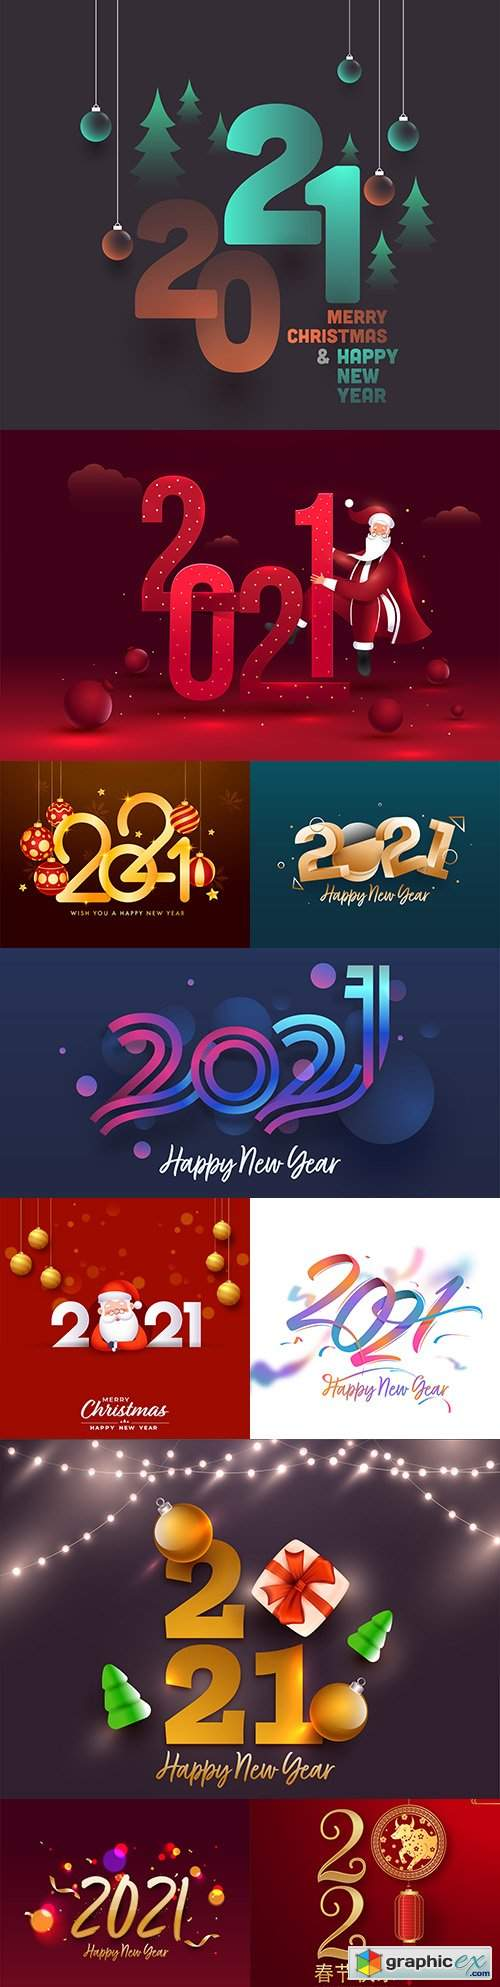 Download Decorative text with New Year 2021 colorful design » Free ...